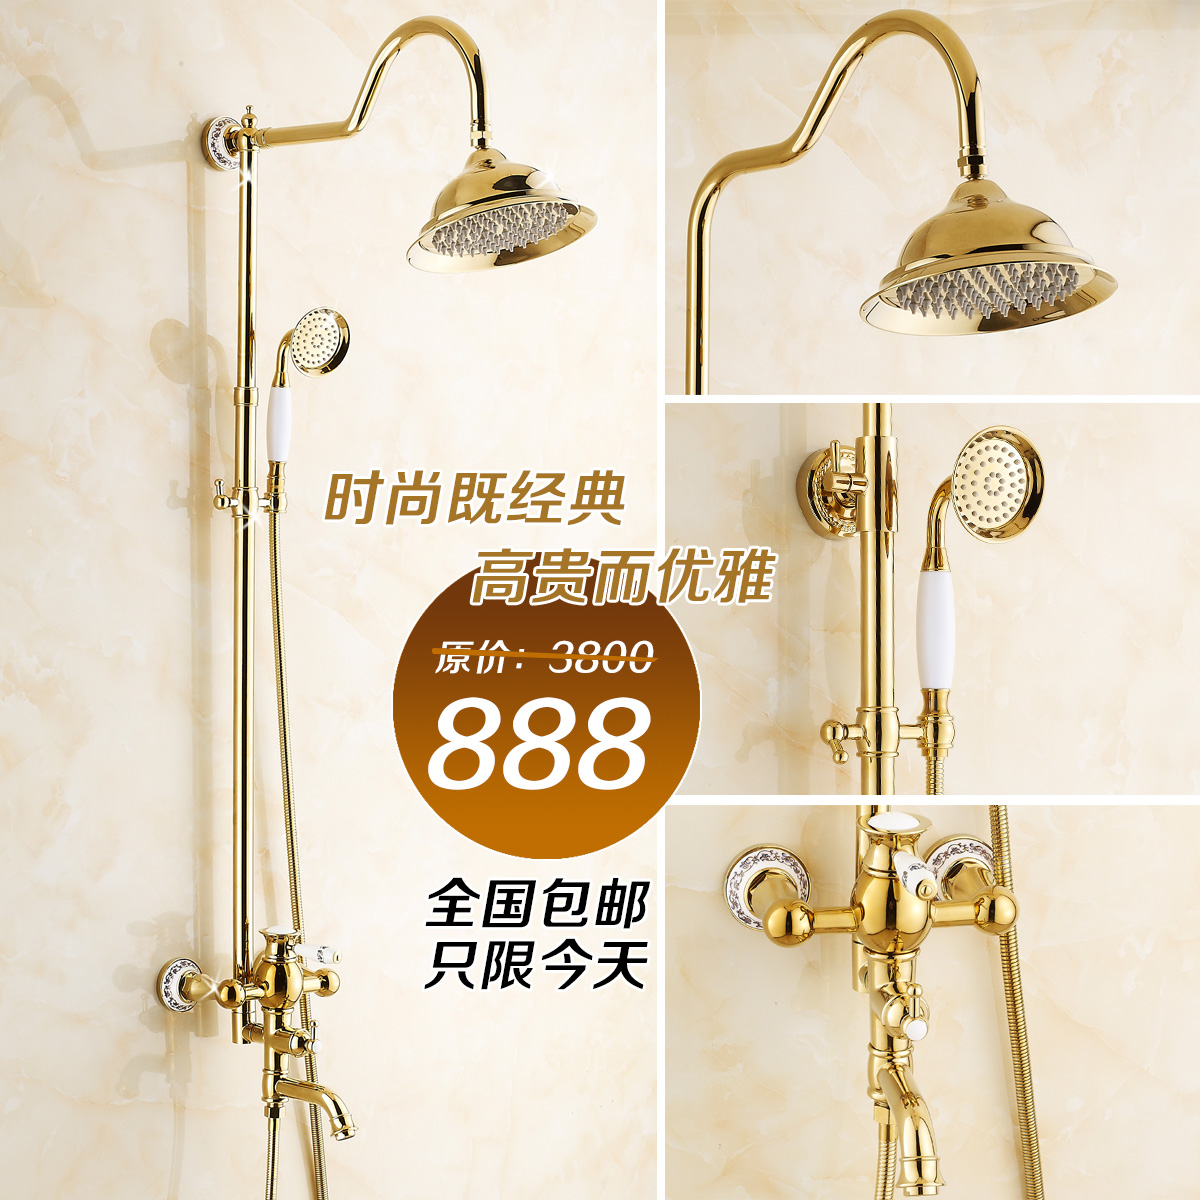 All copper continental european golden shower shower package antique copper full suite shower bath shower faucet